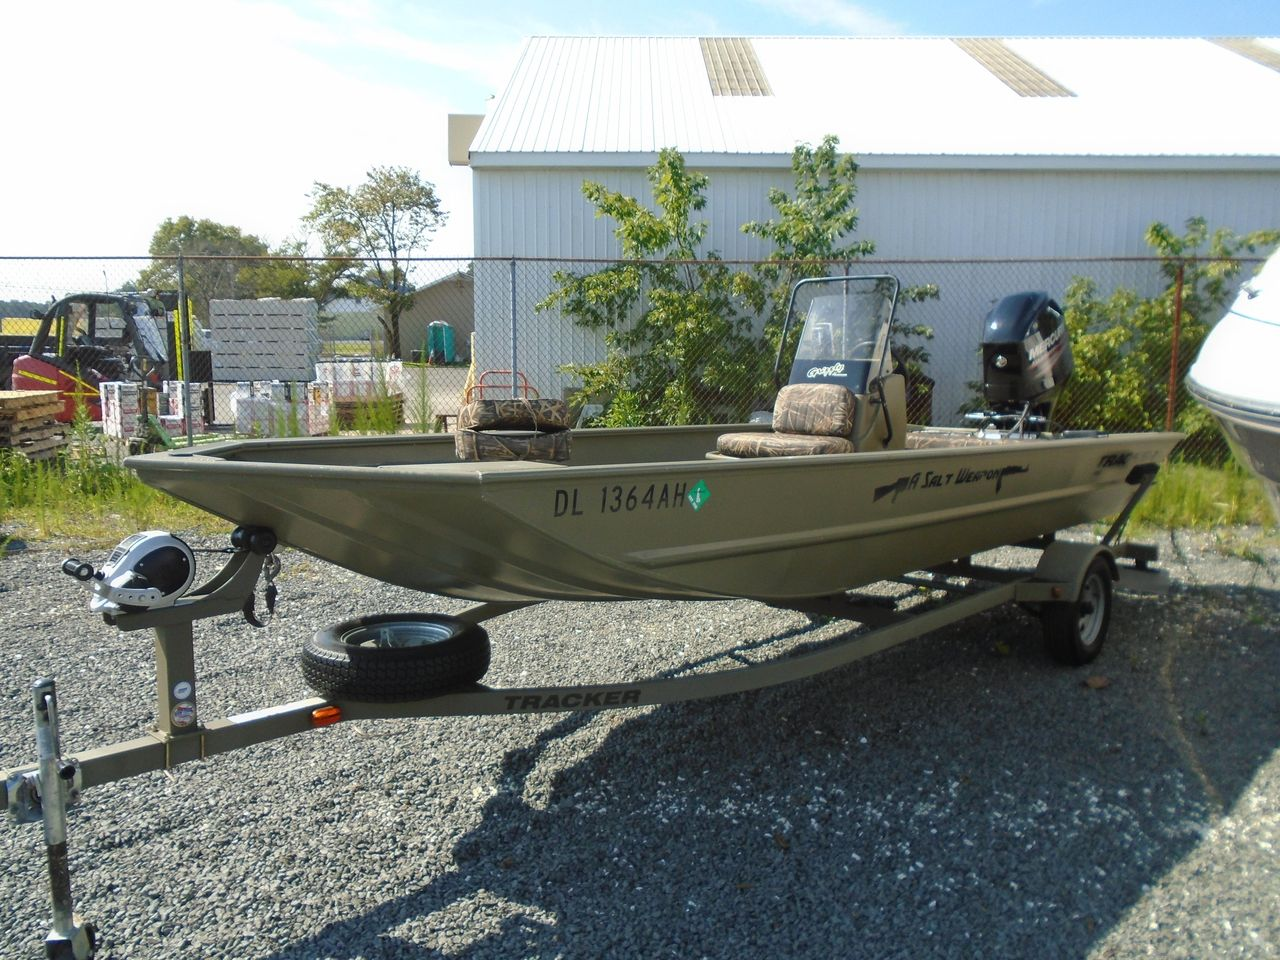 2014 Used Tracker 1860 Grizzly1860 Grizzly Jon Boat For Sale